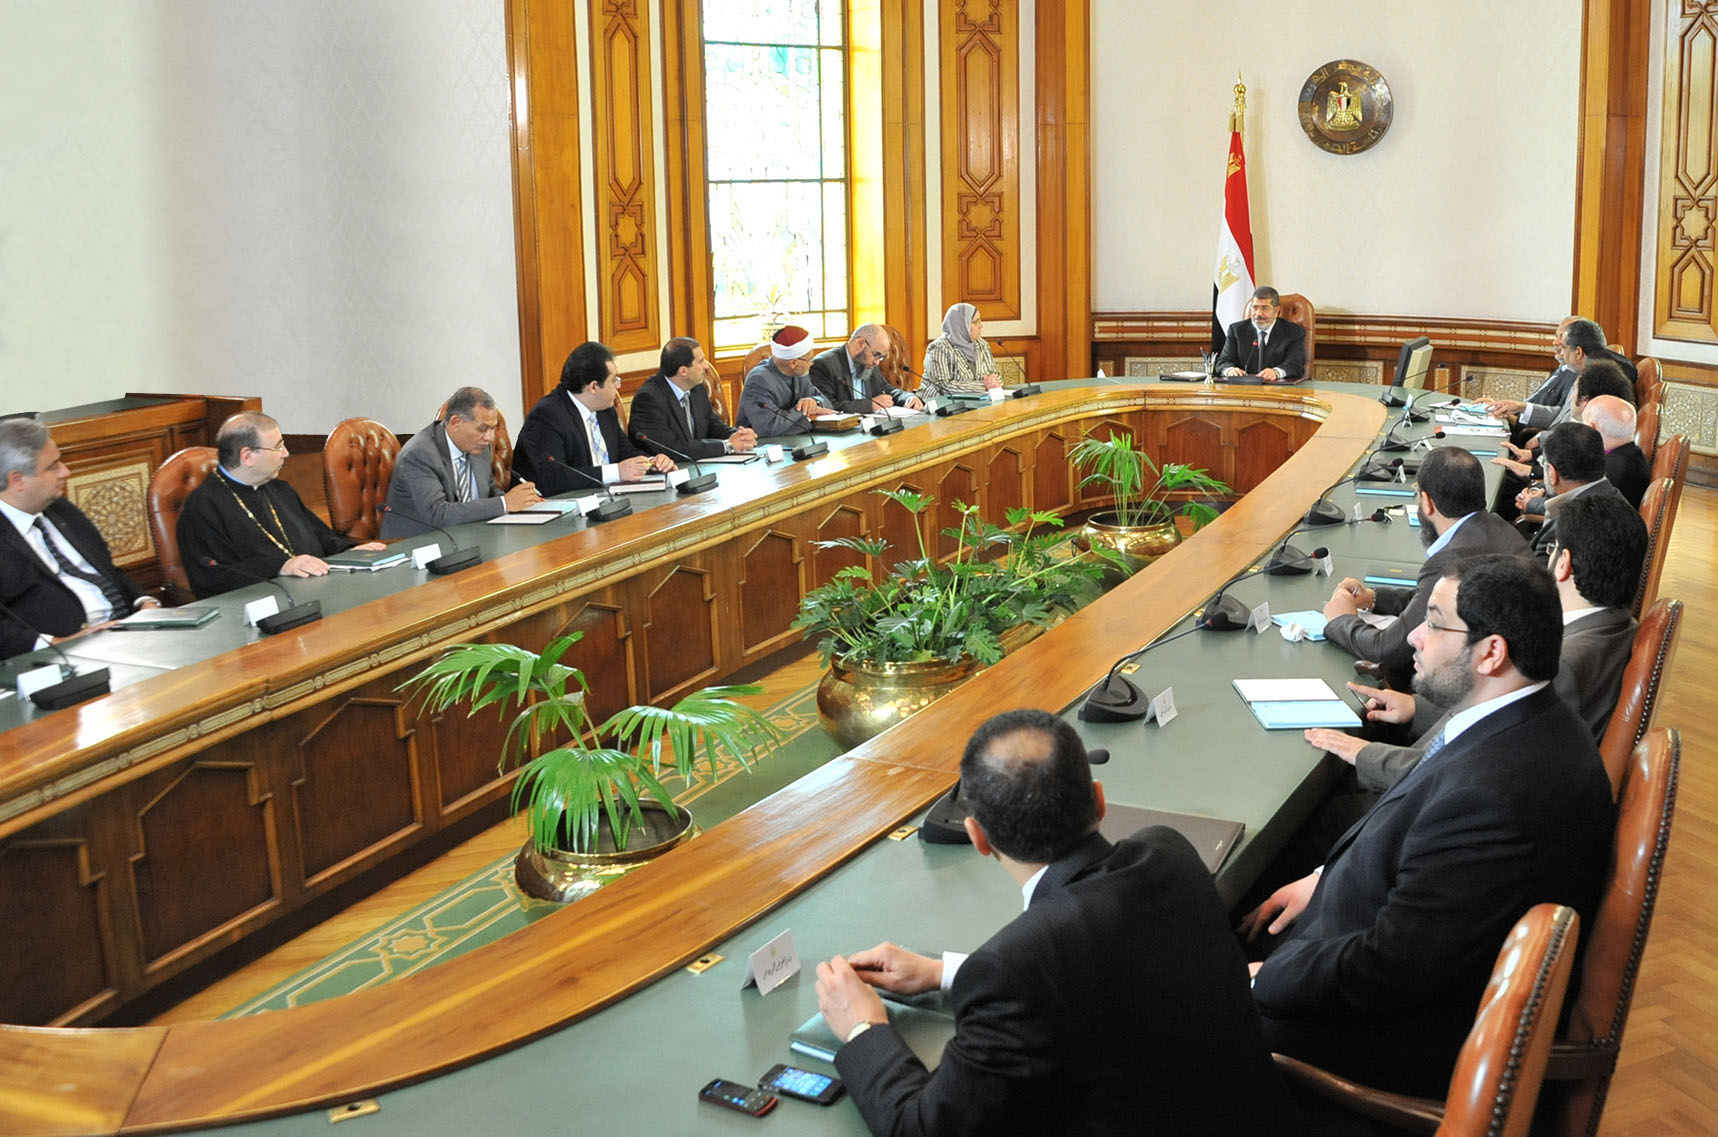 A handout picture released by the Egyptian presidency on June 3, 2013, shows Egyptian President Mohamed Morsi (C top) meeting with political figures to discuss the country's water crisis and Ethiopia's dam project on the Blue Nile. (AFP Photo)